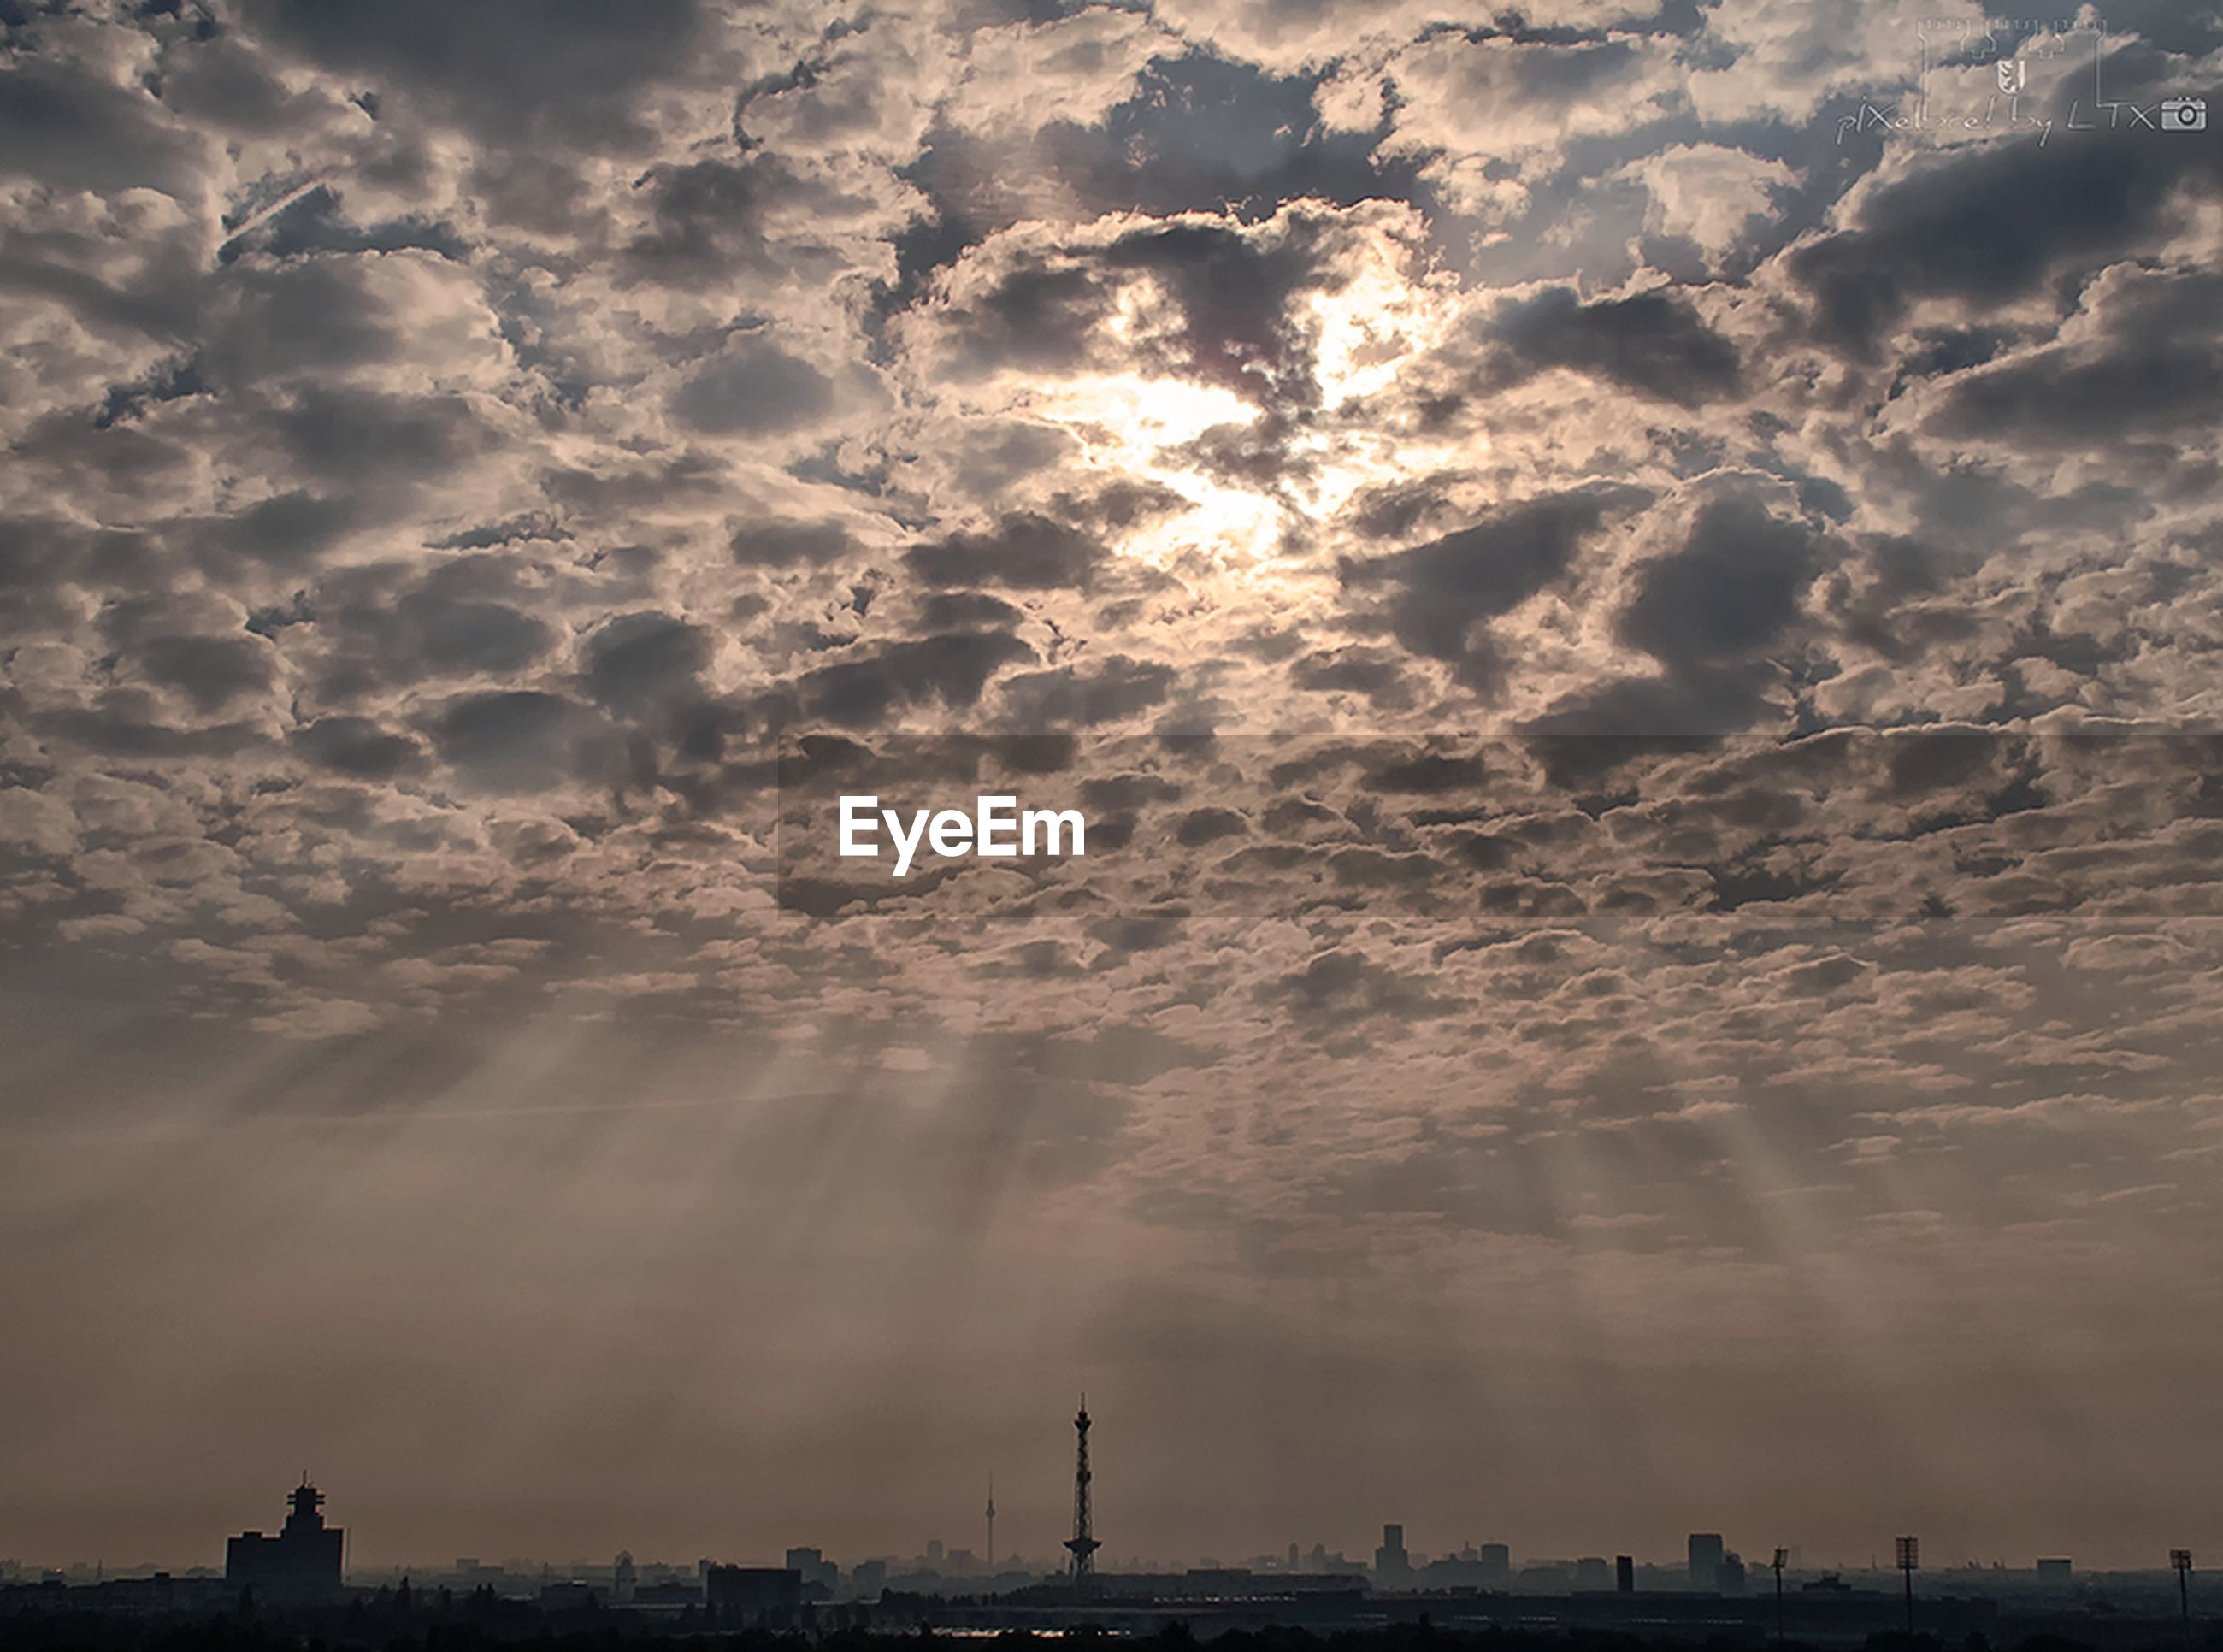 sky, cloud - sky, city, built structure, weather, architecture, building exterior, sunbeam, cityscape, cloudy, cloud, tourism, travel destinations, dramatic sky, nature, atmospheric mood, development, tranquility, beauty in nature, city life, vacations, day, atmosphere, scenics, cloudscape, storm cloud, outdoors, majestic, tranquil scene